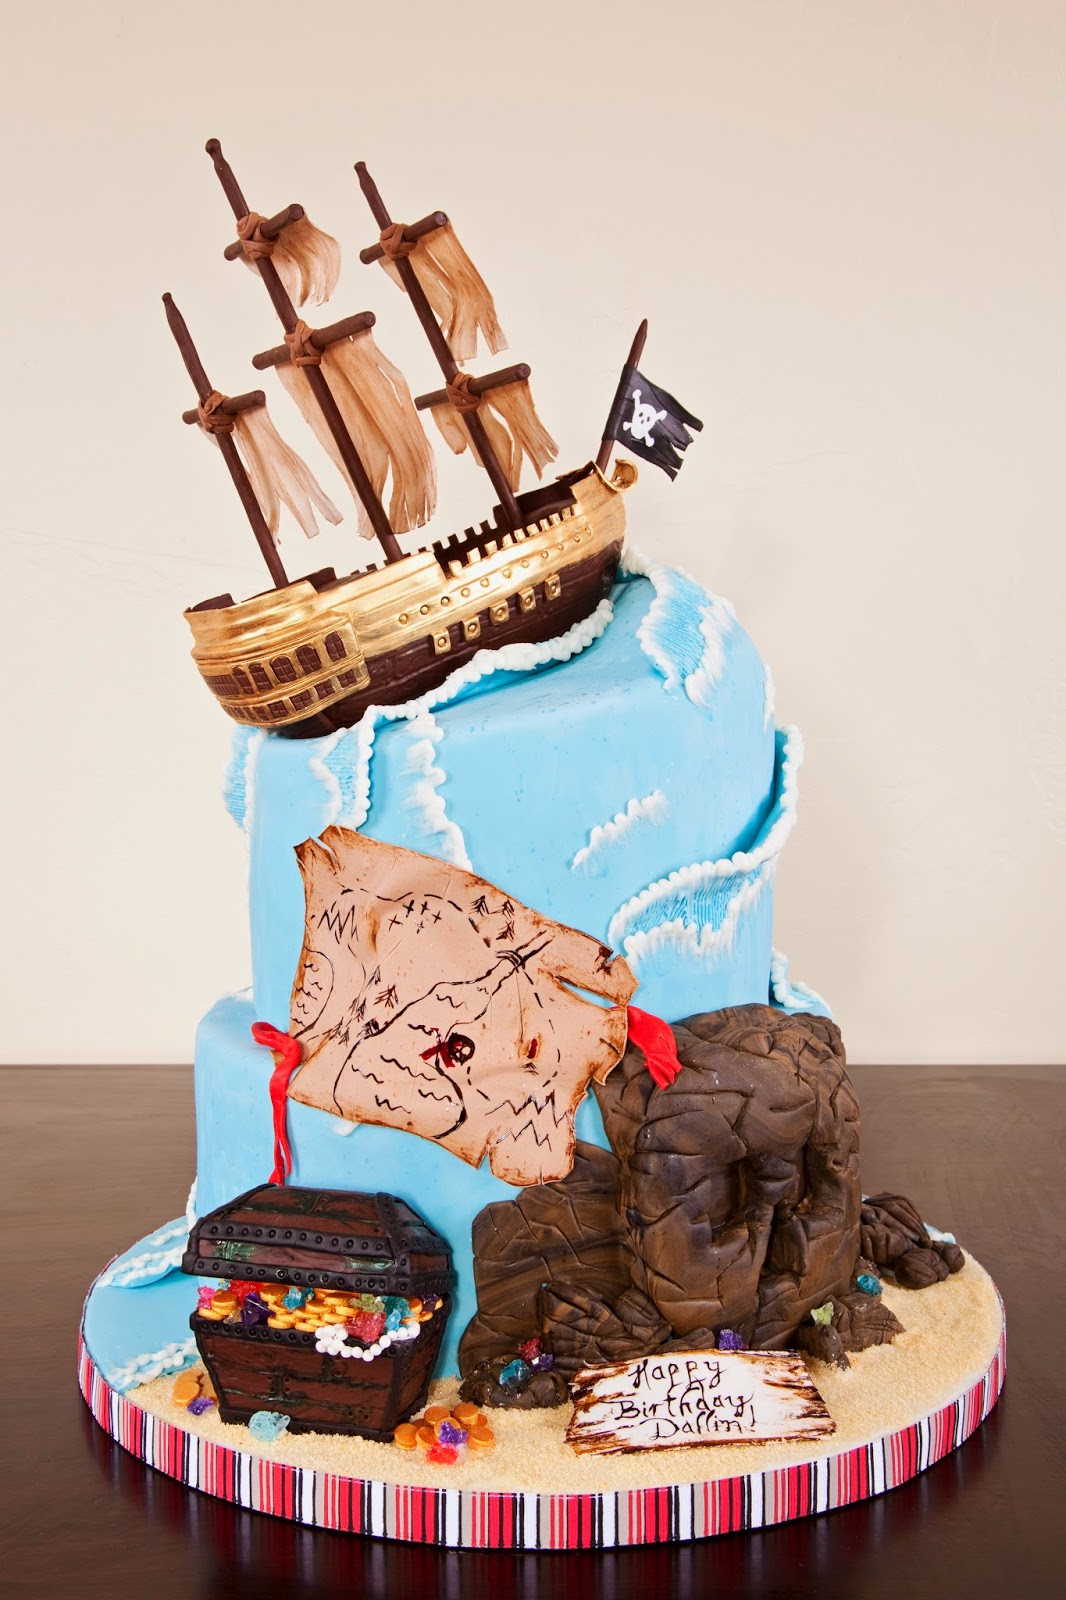 Best ideas about Ship Birthday Cake . Save or Pin Delectable Cakes Stormy Ocean Pirate Ship Birthday Cake Now.